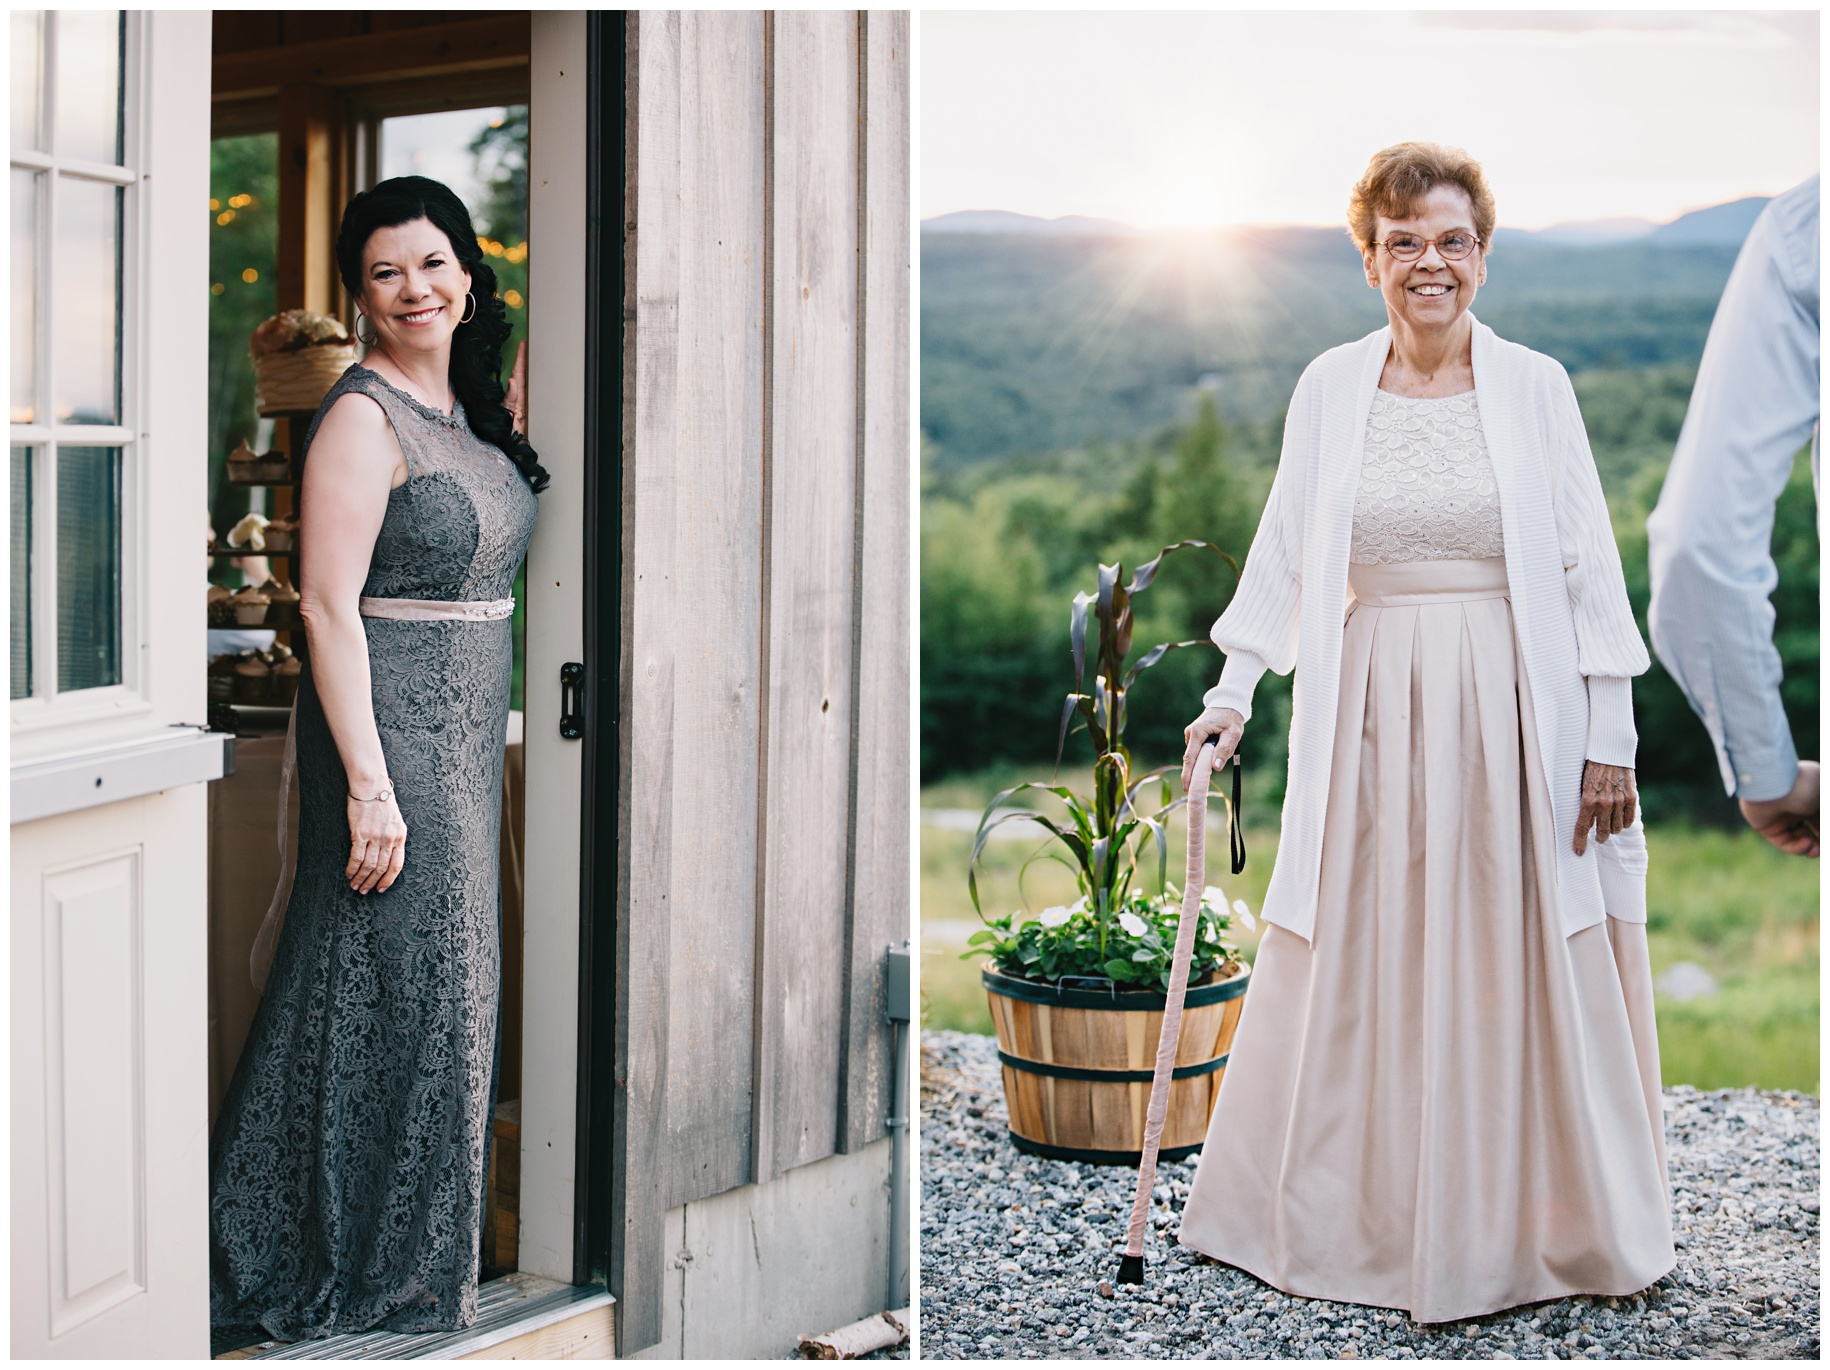 maineweddingphotographer_graniteridge_norway-115